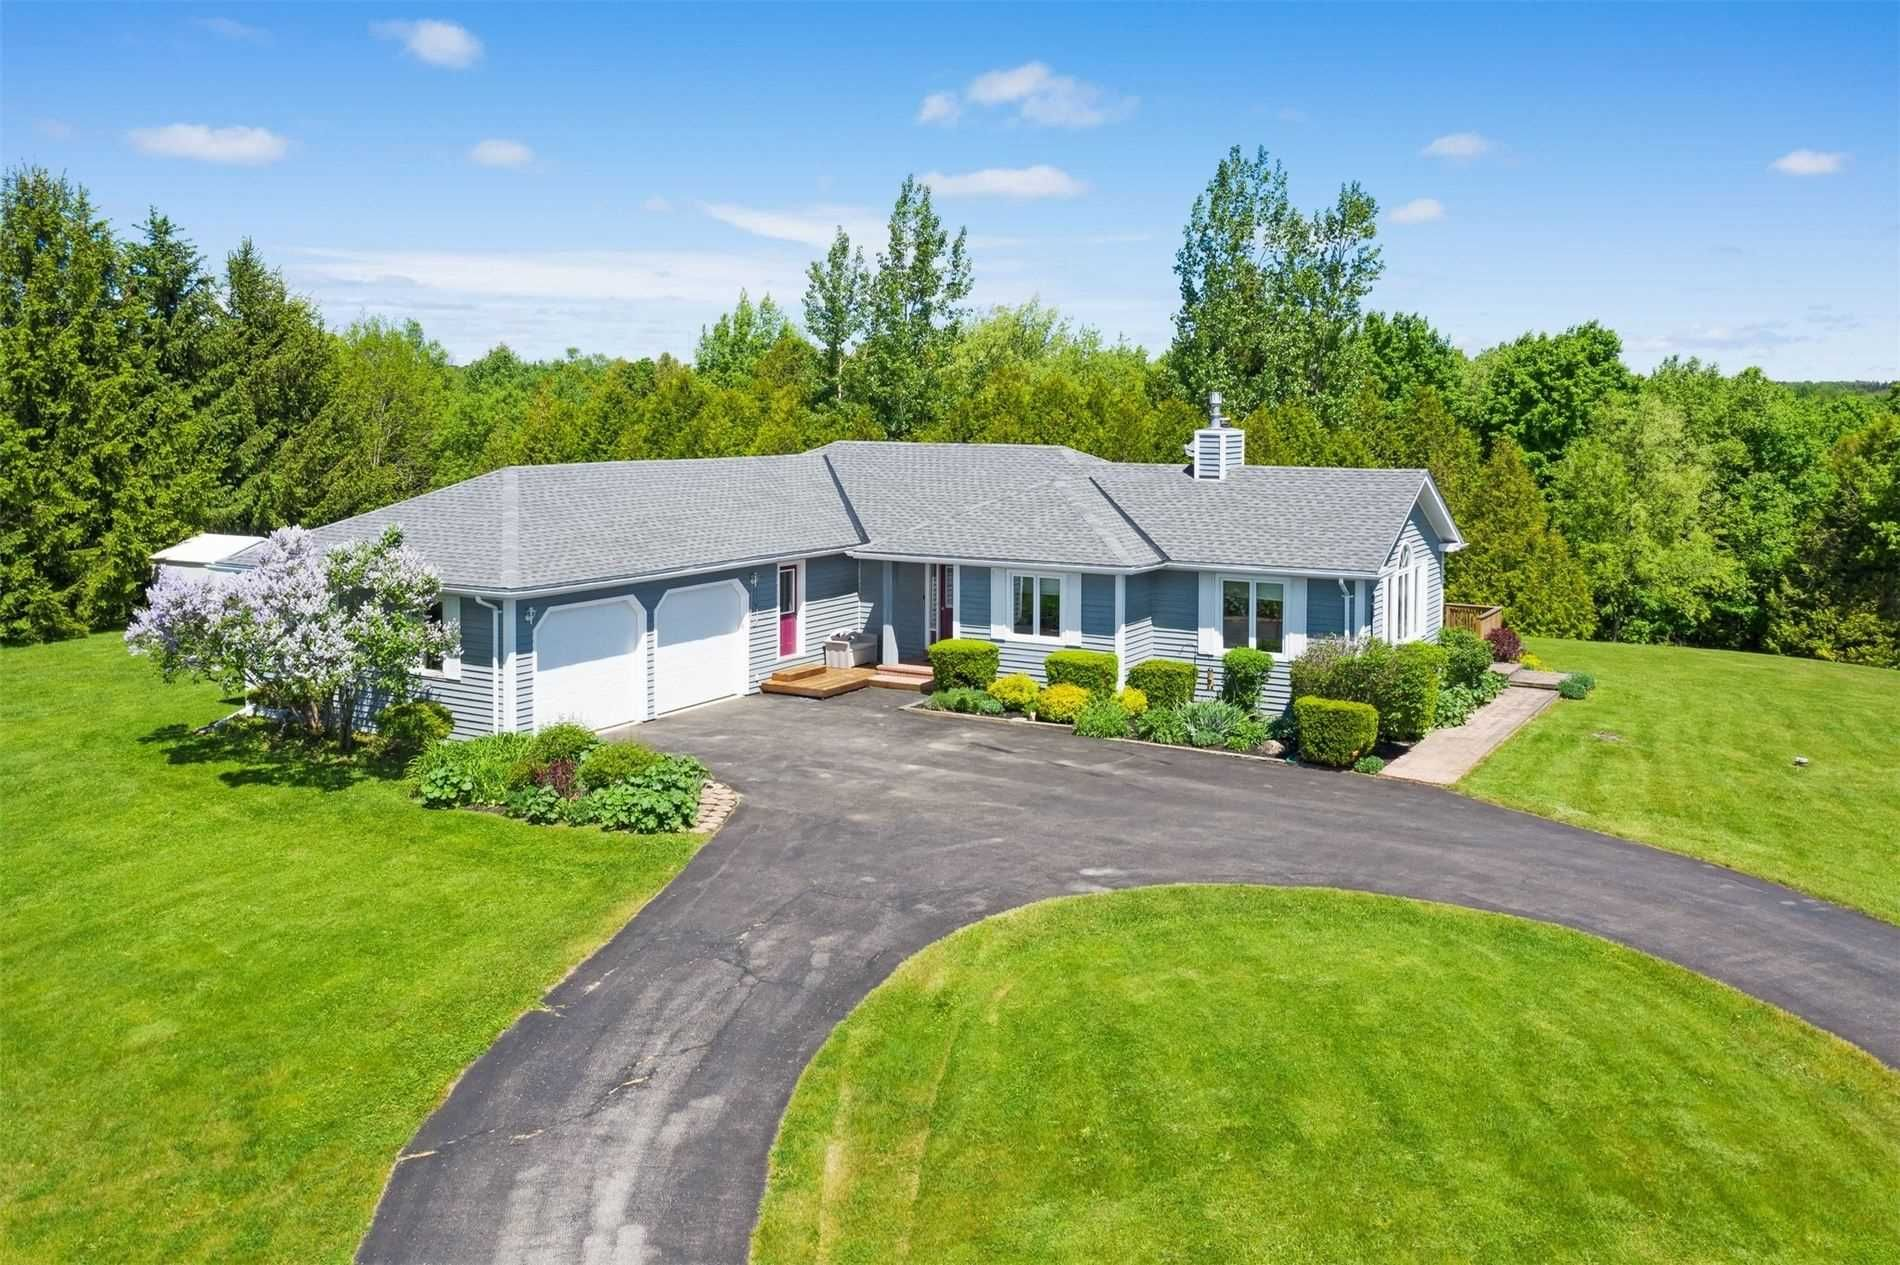 Main Photo: 7 Oldfield Court in Melancthon: Rural Melancthon House (Bungalow) for sale : MLS®# X5254330